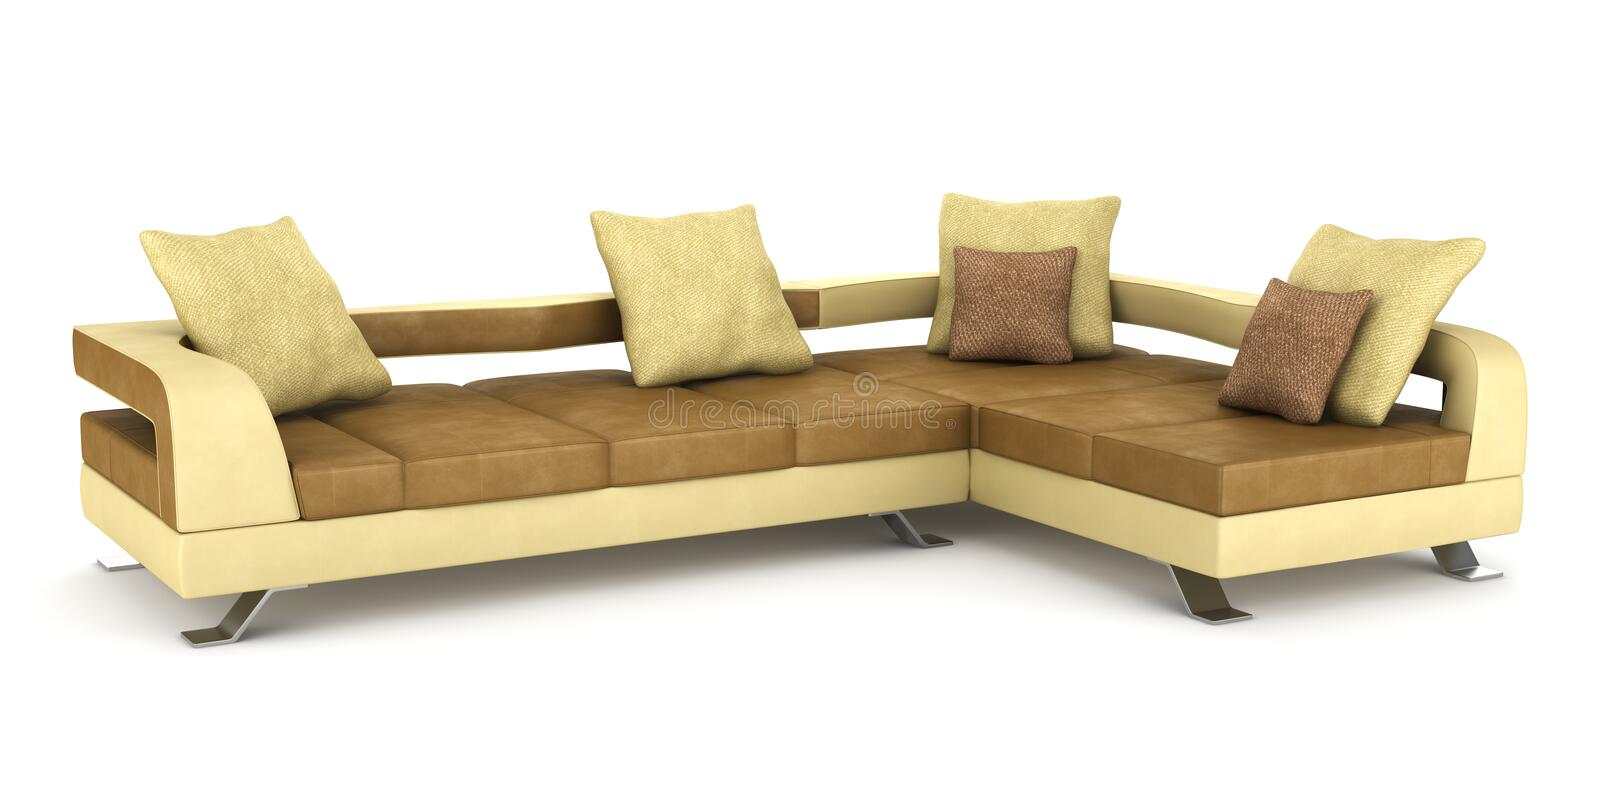 Modern brown couch with pillows isolated stock photo